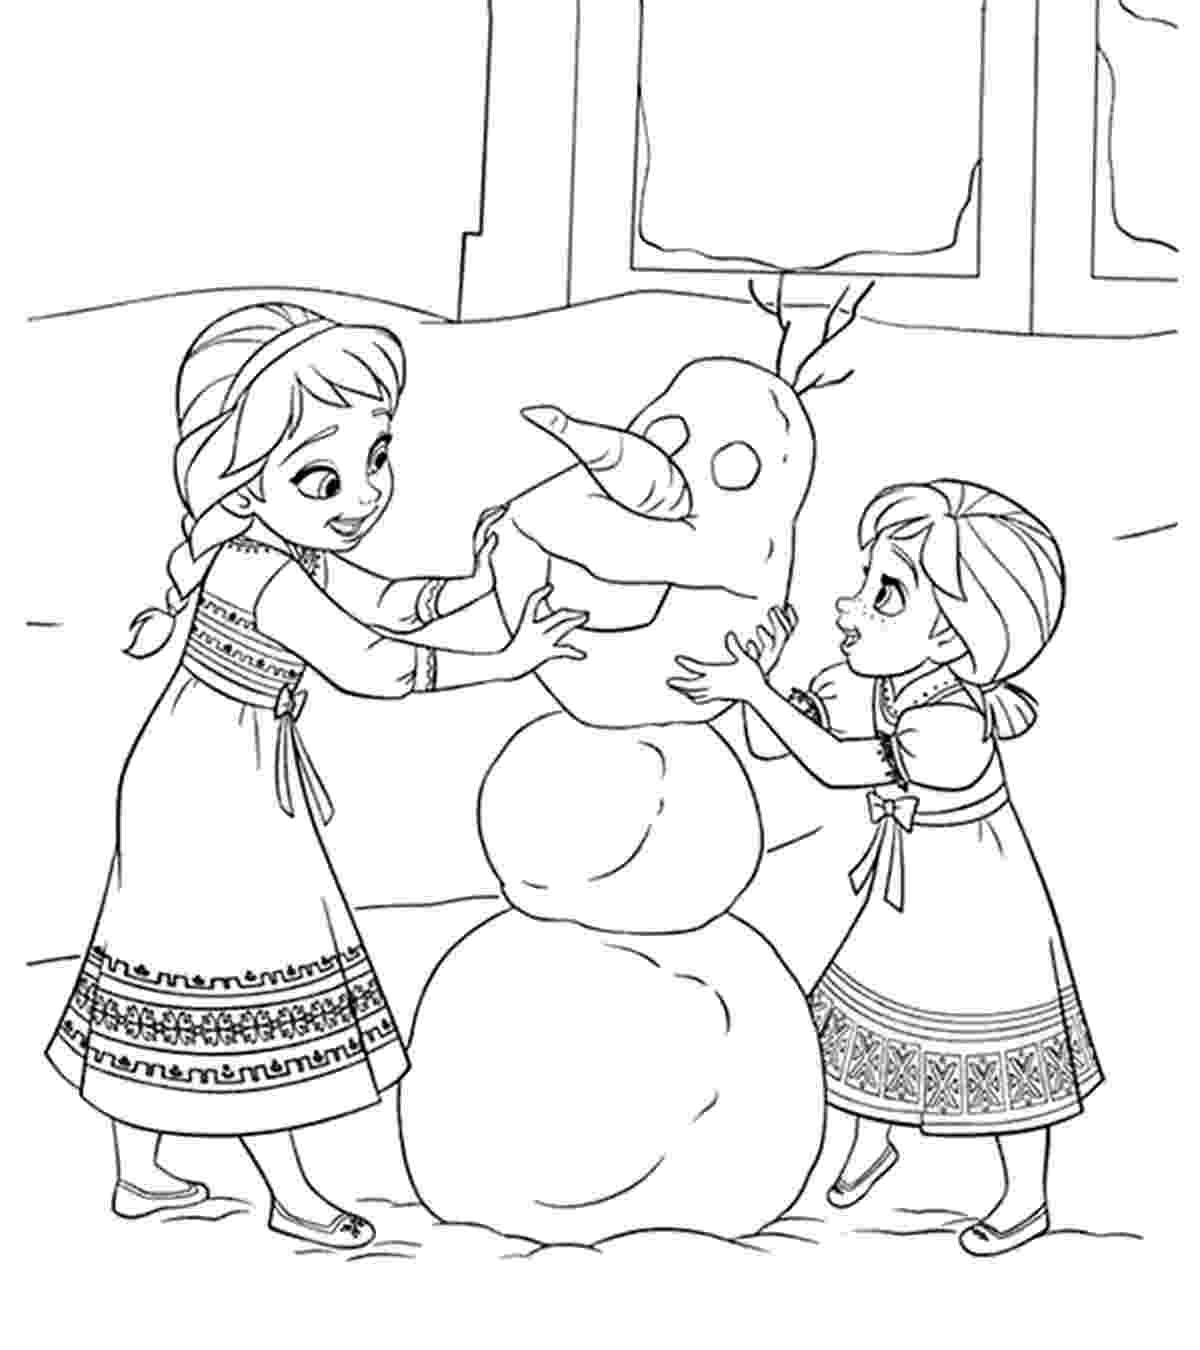 frozen printables coloring pages free printable frozen coloring pages for kids best pages printables frozen coloring